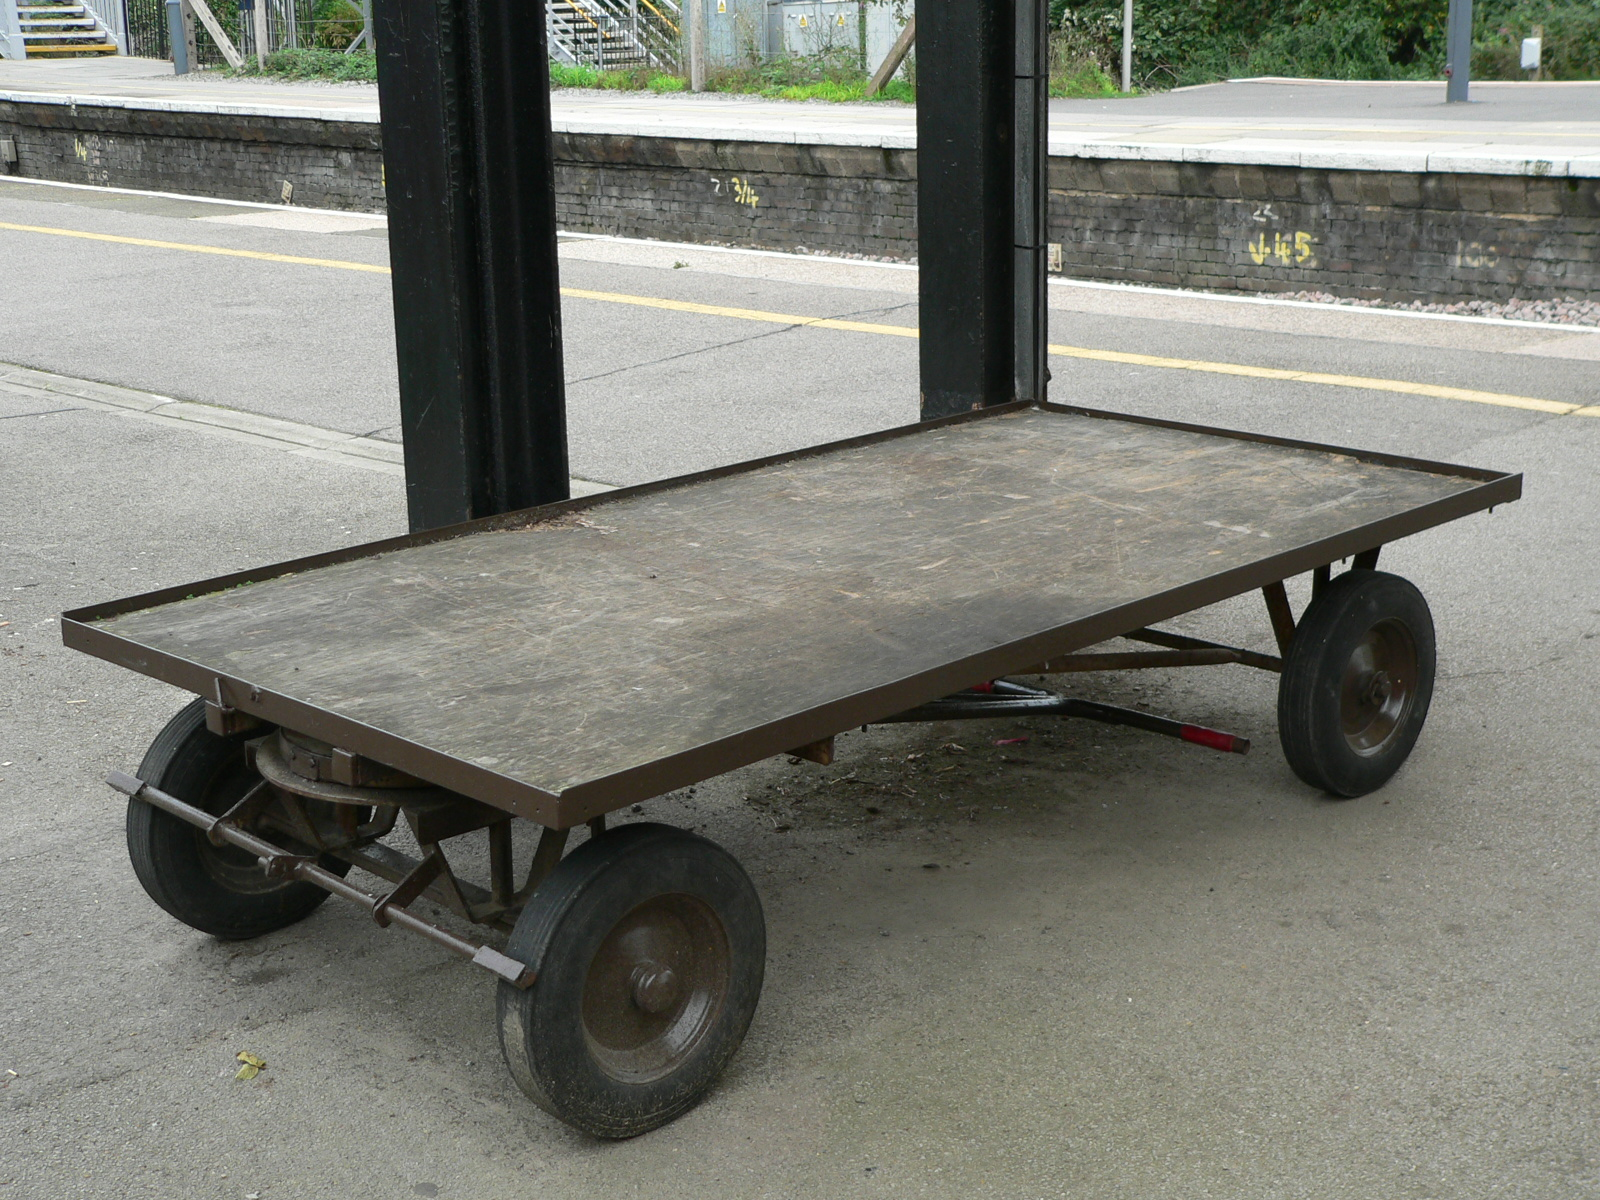 A Frame Trolley Flatbed Trolley Wikipedia